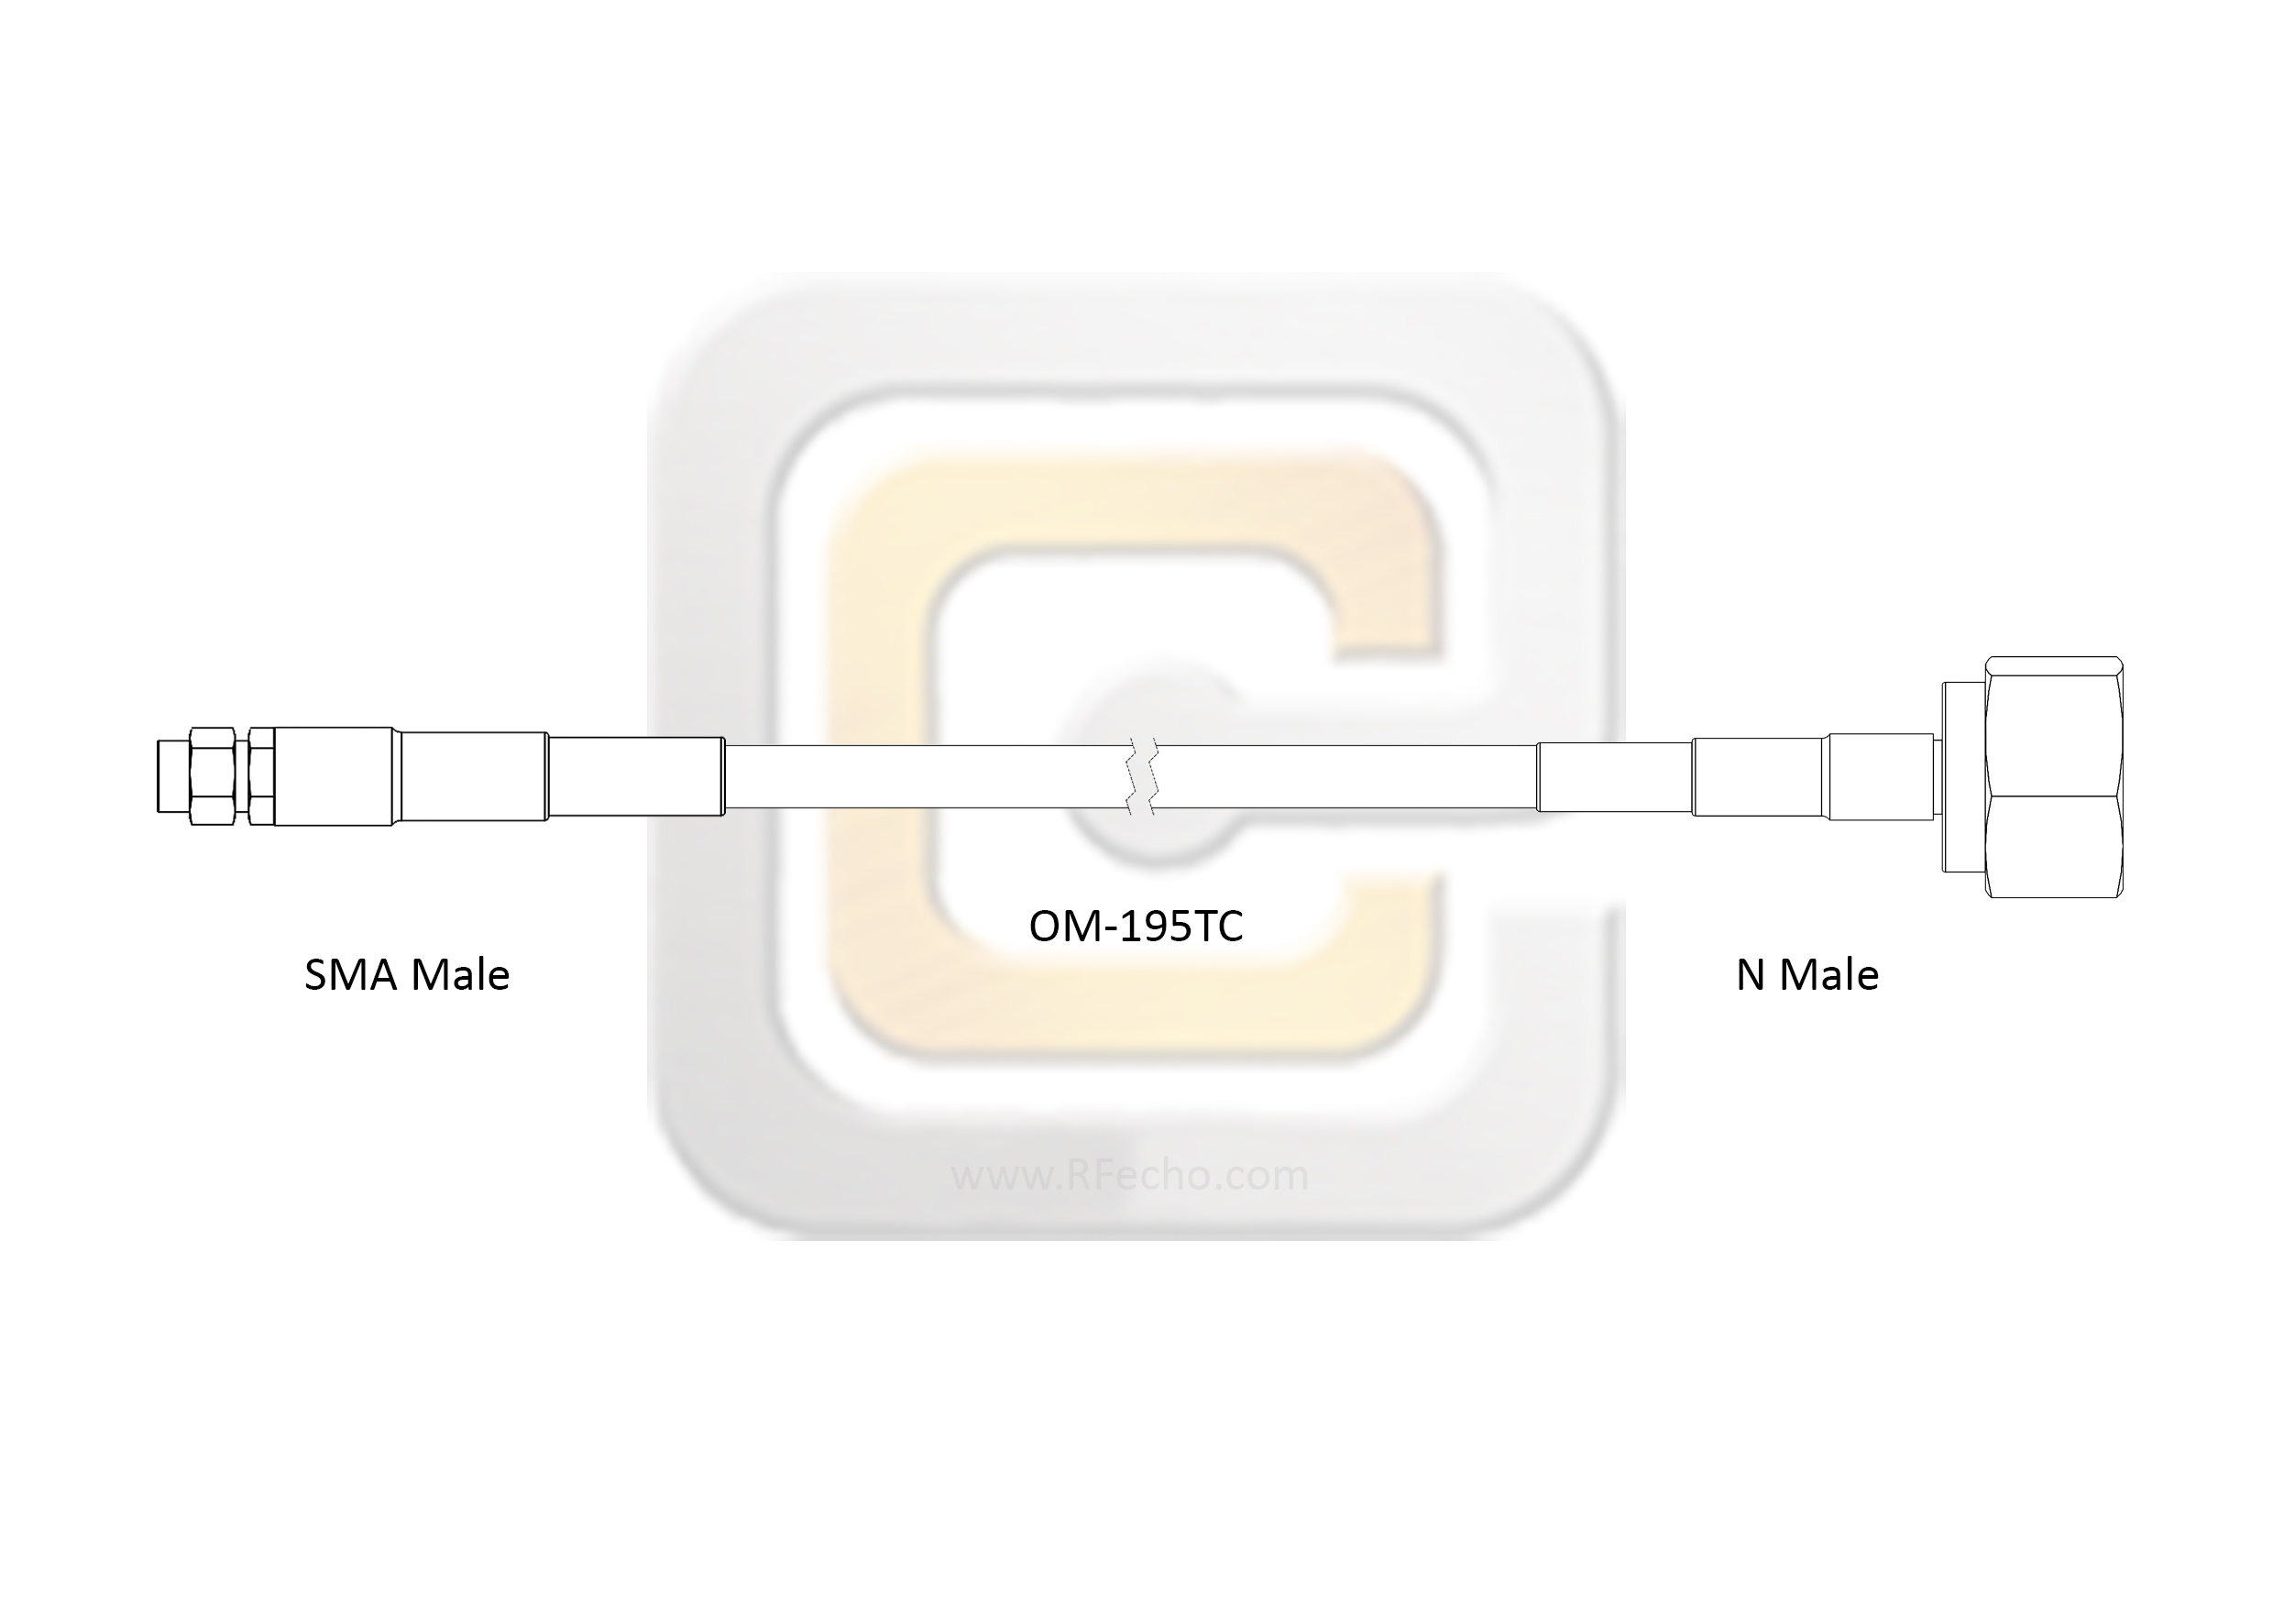 SMA Male to N Male, 18 GHz,  OM-195TC Coax and RoHS